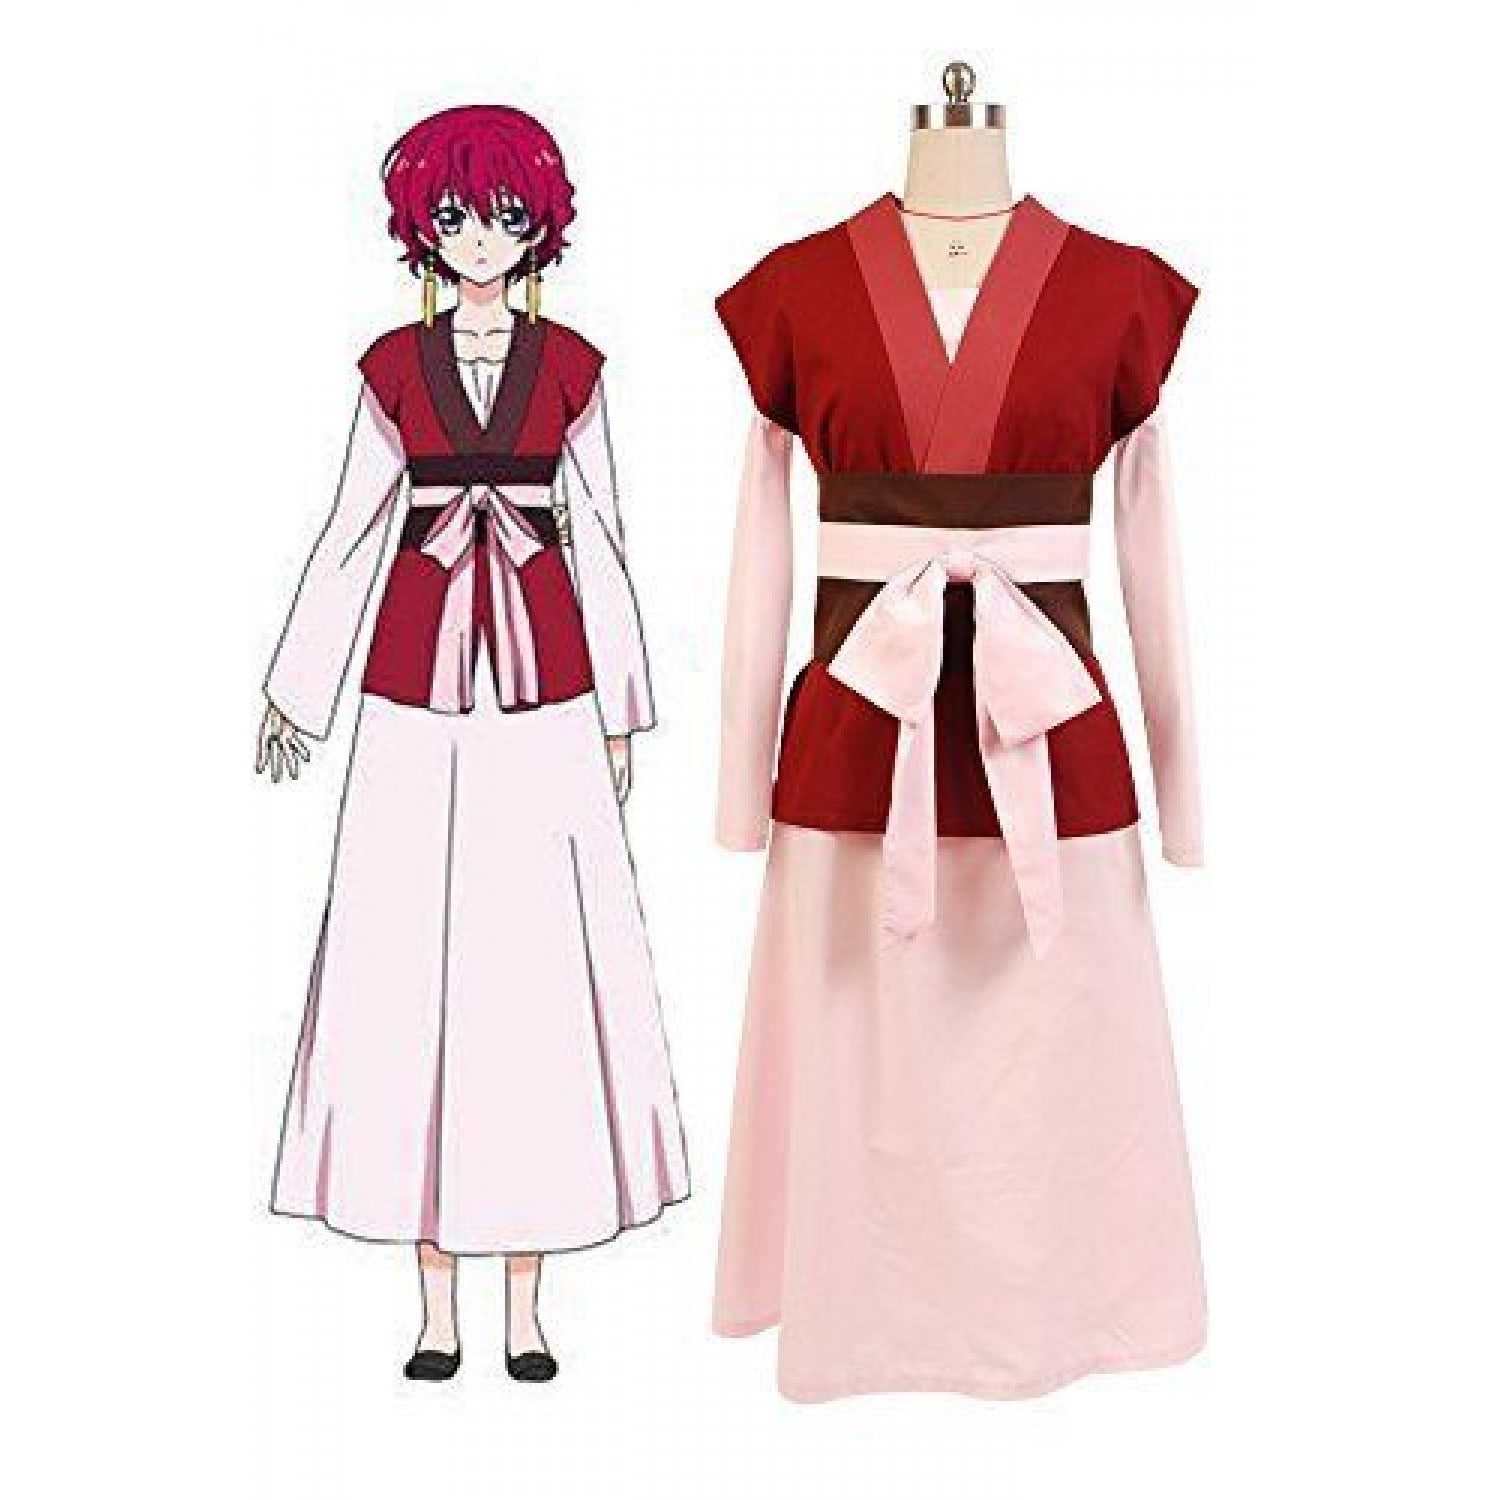 Akatsuki no Yona Hak Uniform Outfit Kimono Robe Cloak For Anime Cosplay!COS Y